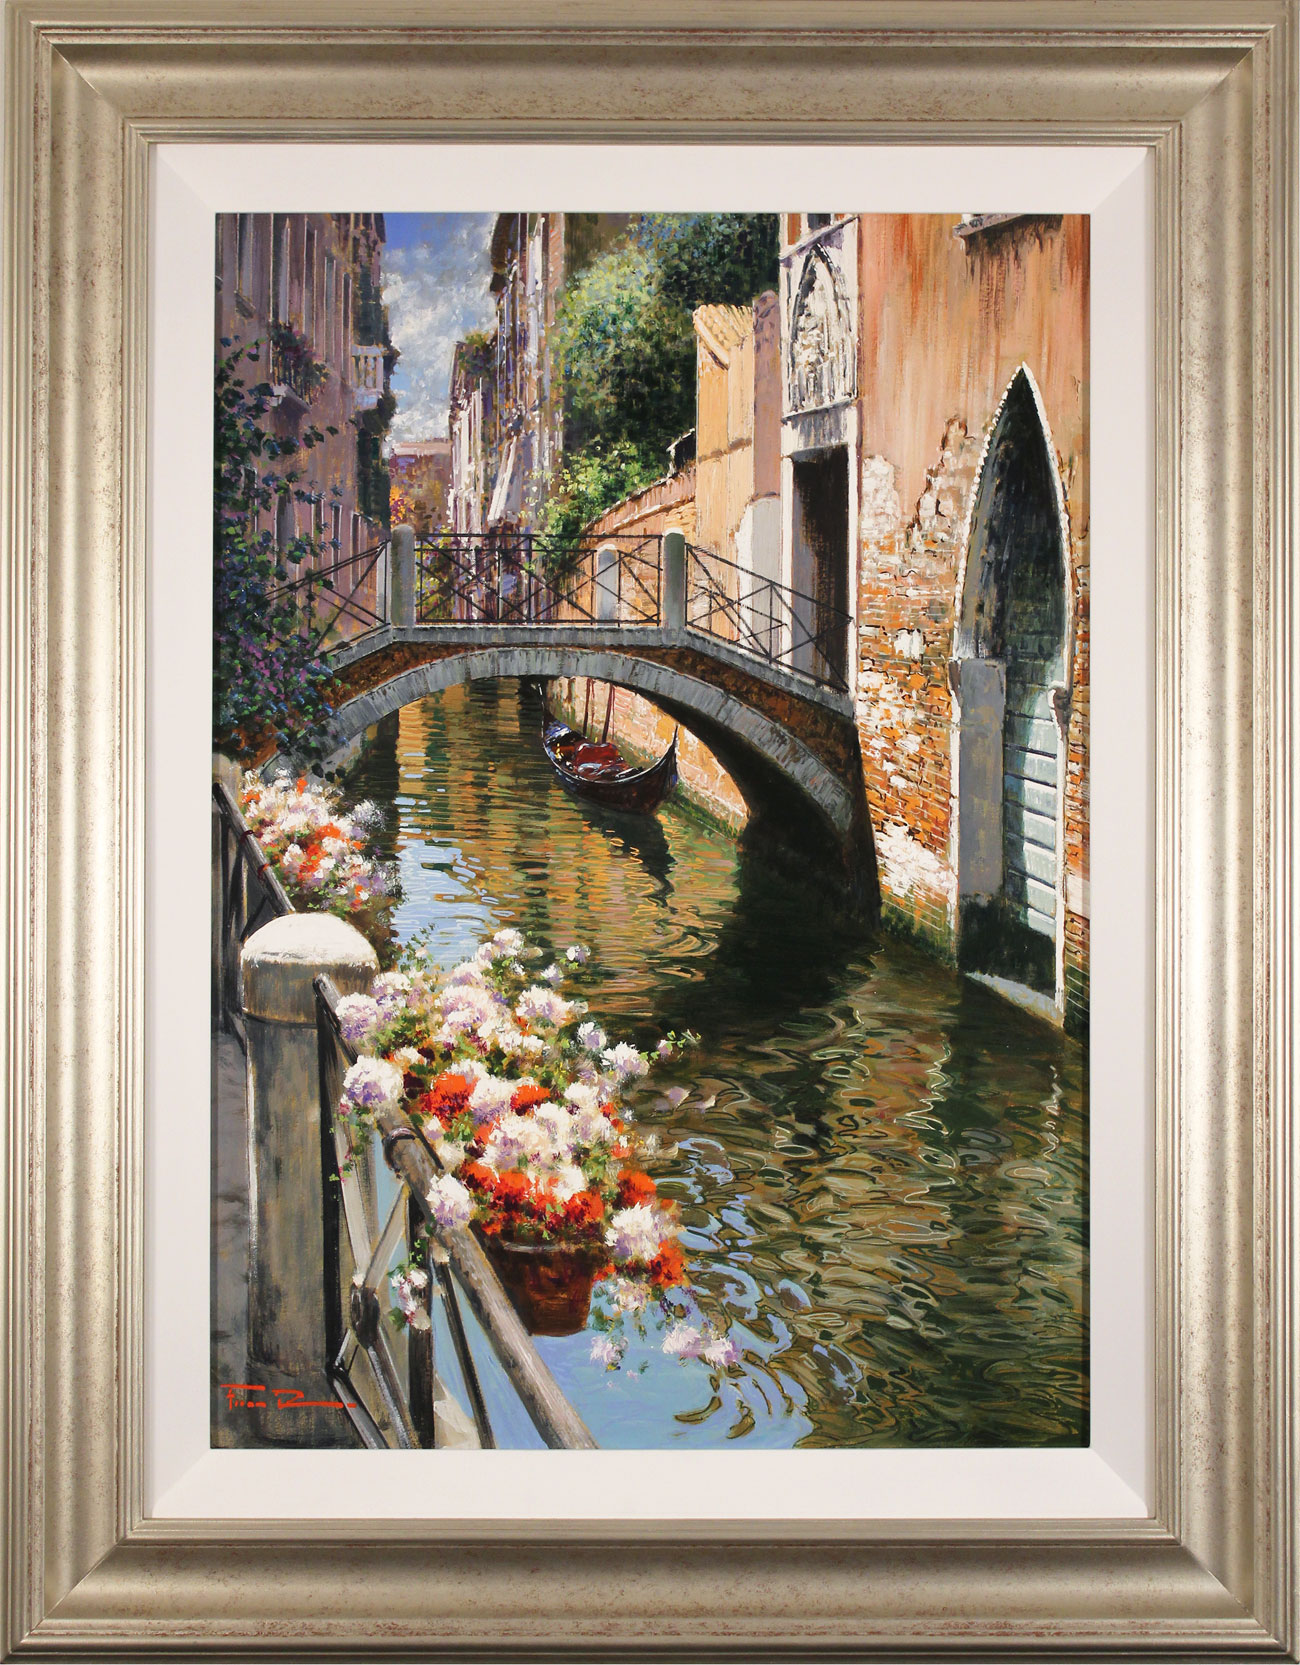 Raffaele Fiore, Original oil painting on canvas, Venetian Canal, click to enlarge